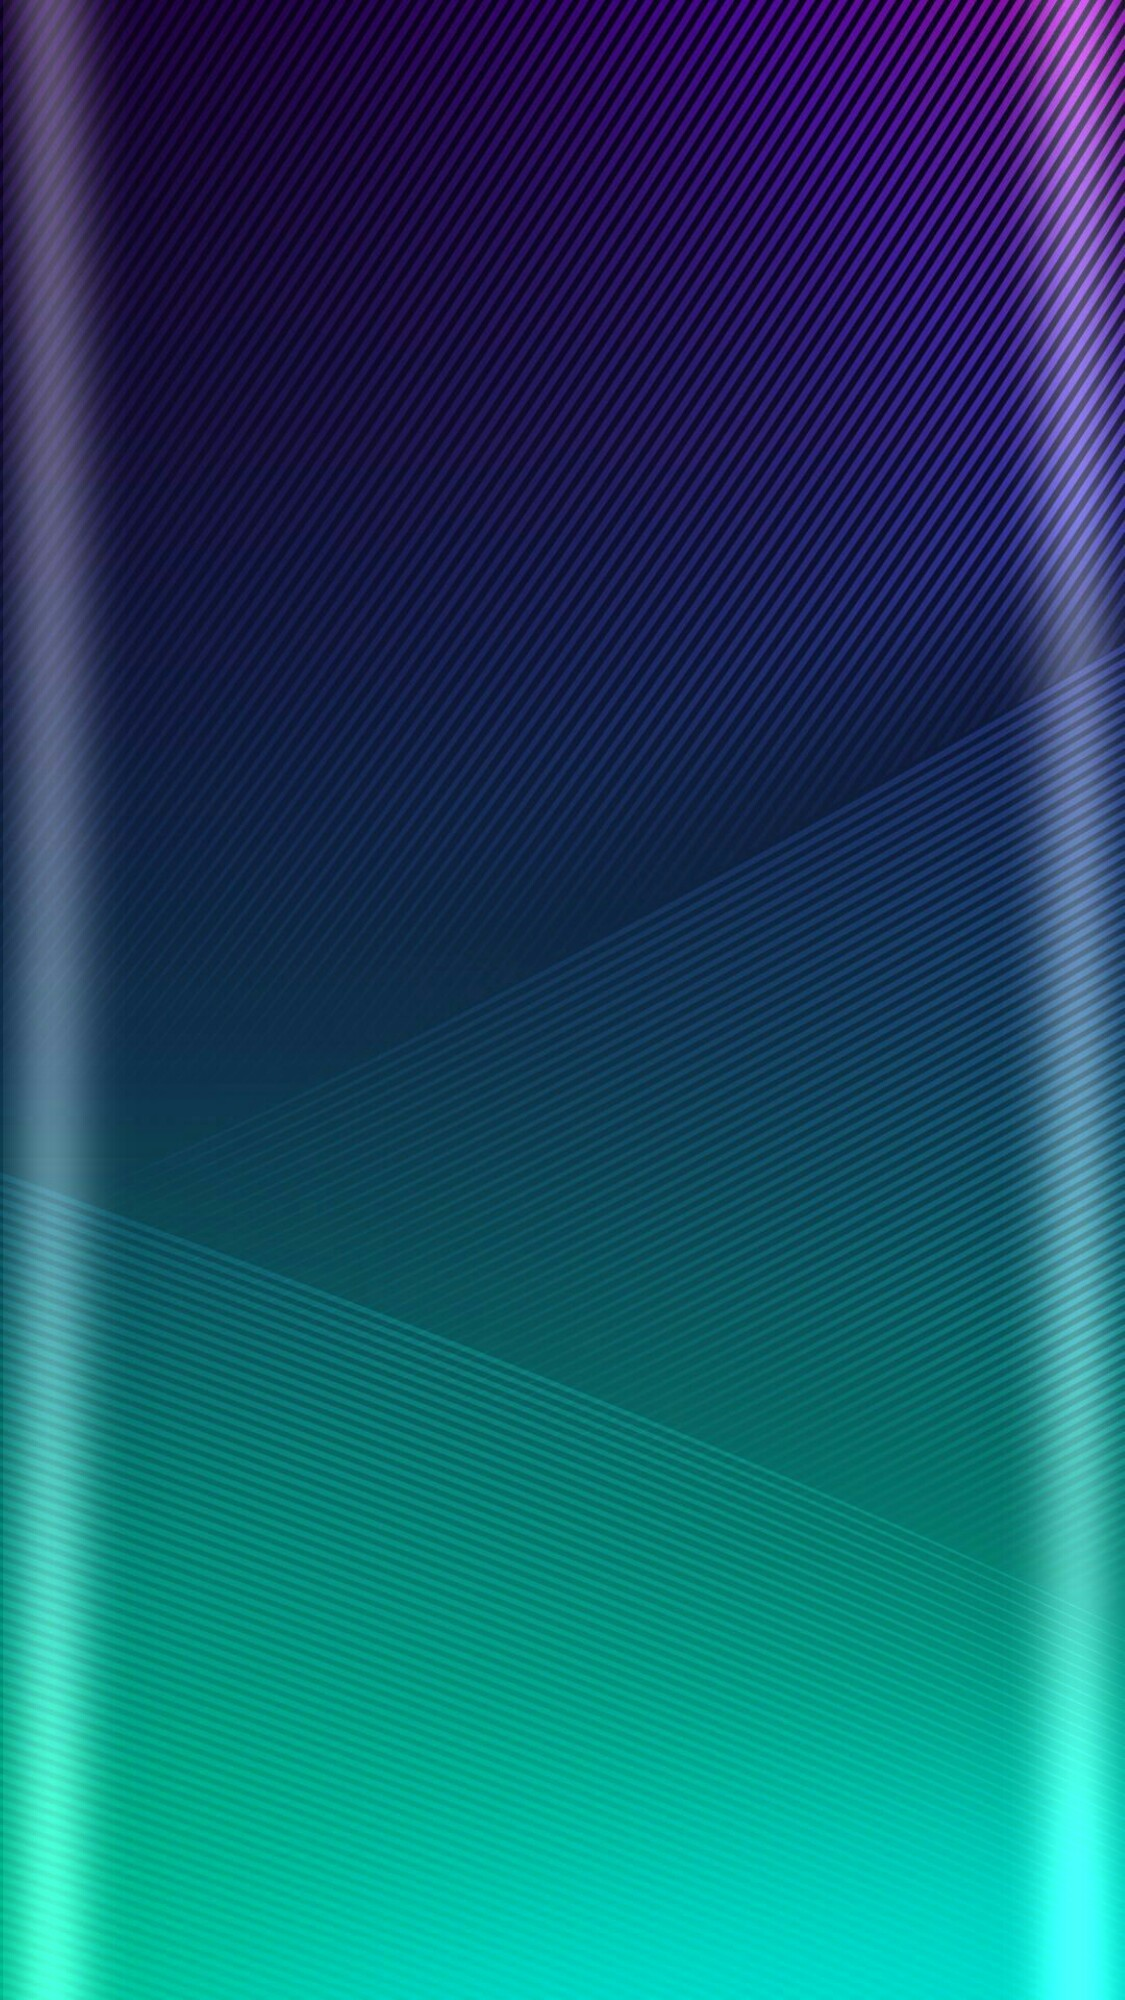 Wallpapers Galaxy S6 Edge Posted By John Simpson